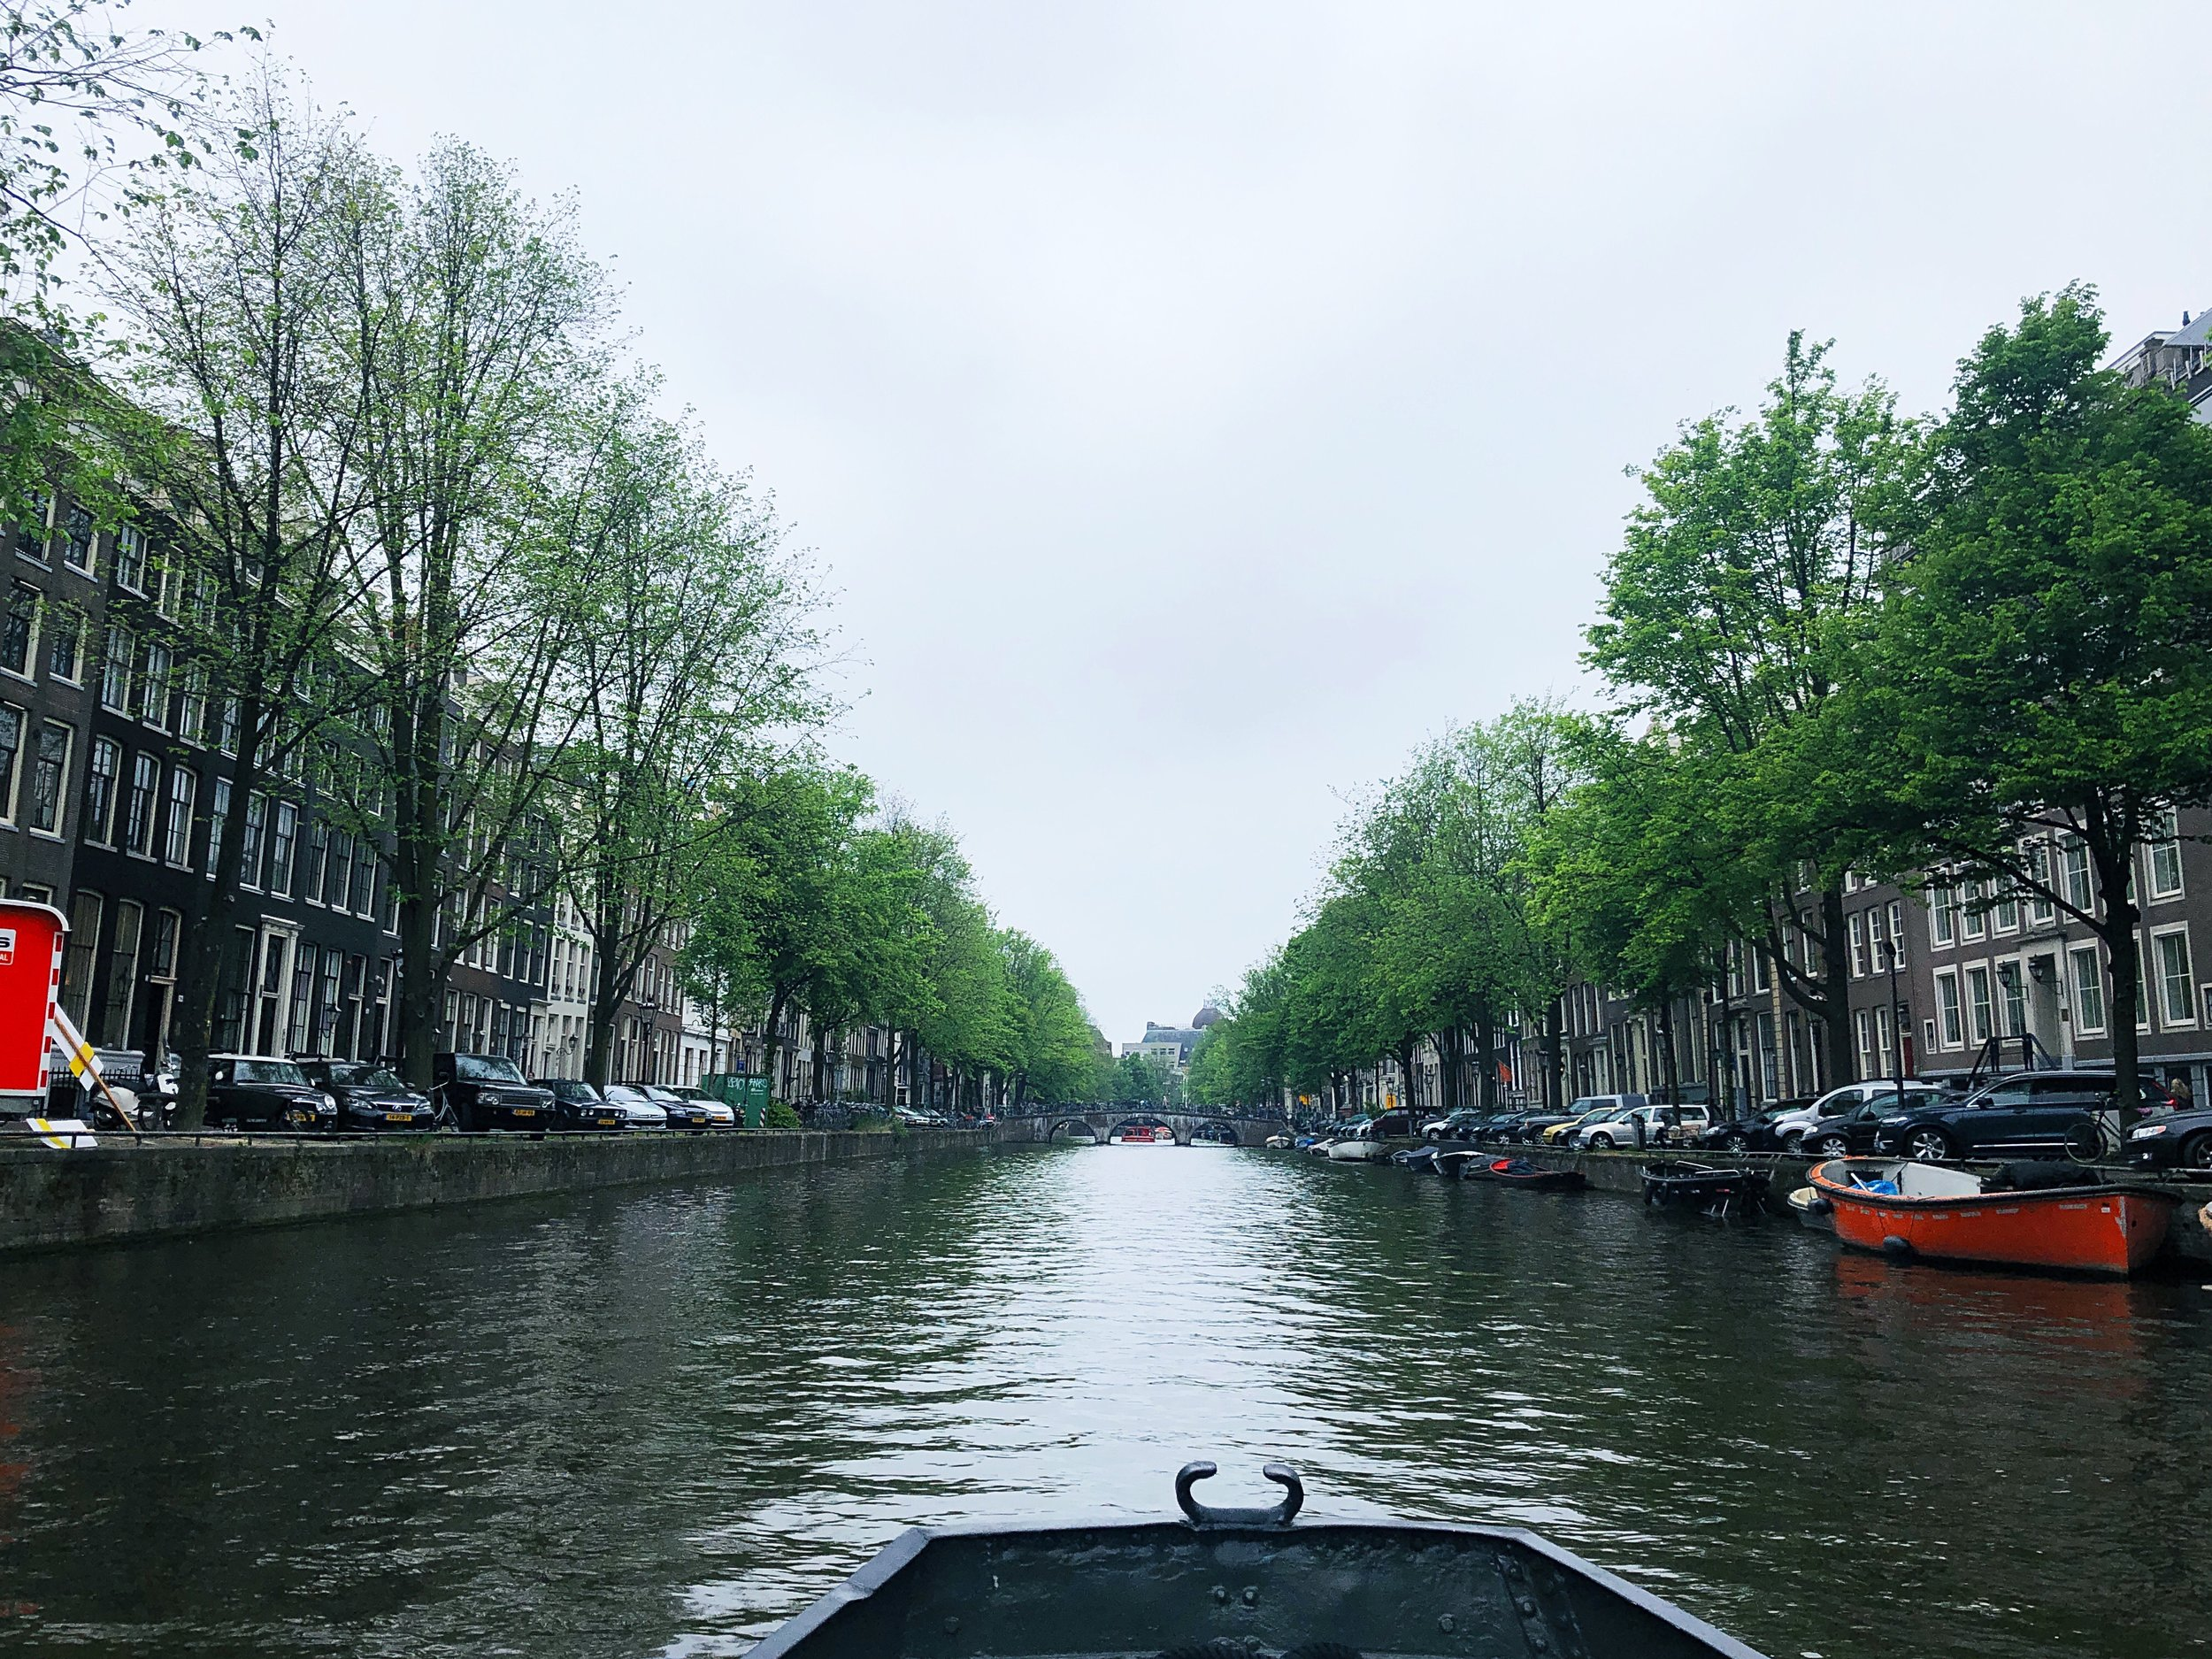 Boating around the canals of Amsterdam.